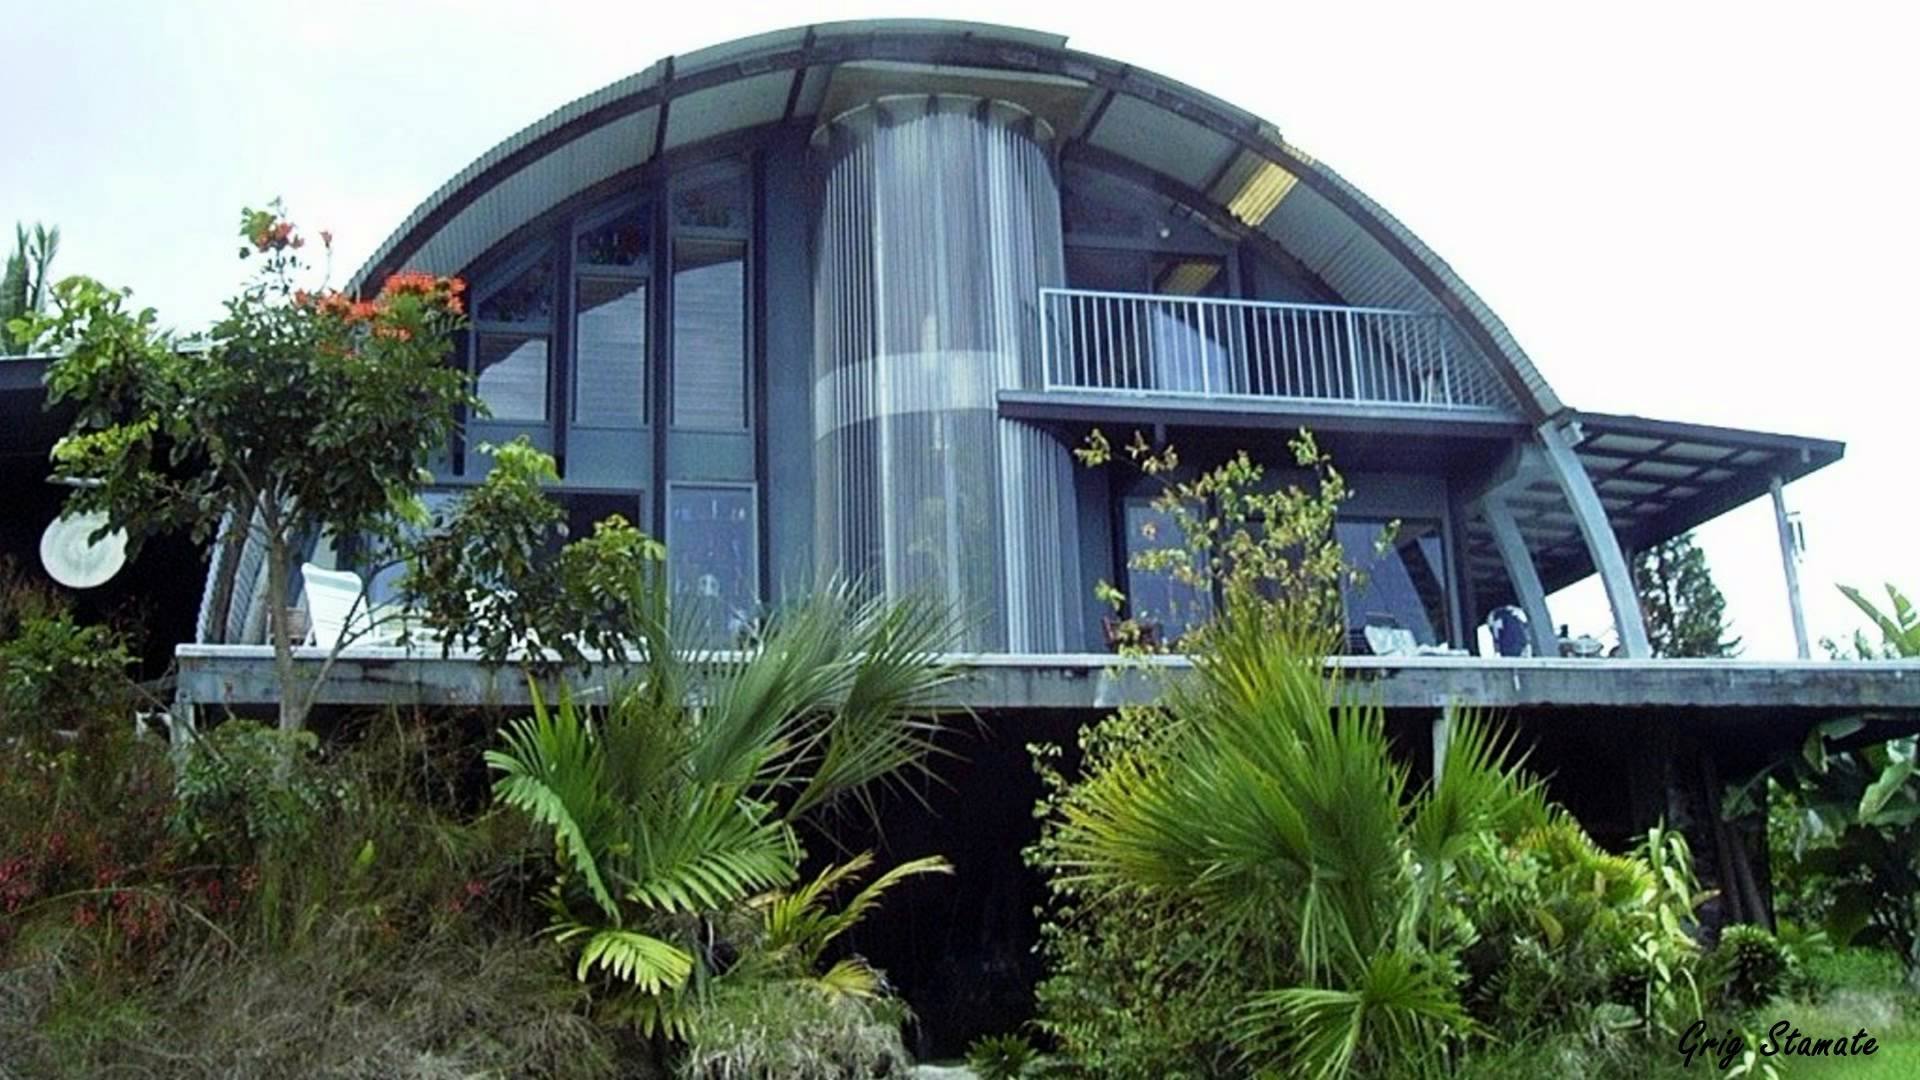 20  Quonset Hut Homes Design  Great Idea for a Tiny House   House     Quonset Hut Homes  Quonset  Quonset Homes ideas  Tags  quonset homes   quonset hut homes interior  quonset hut diy quonset hut homes how to build